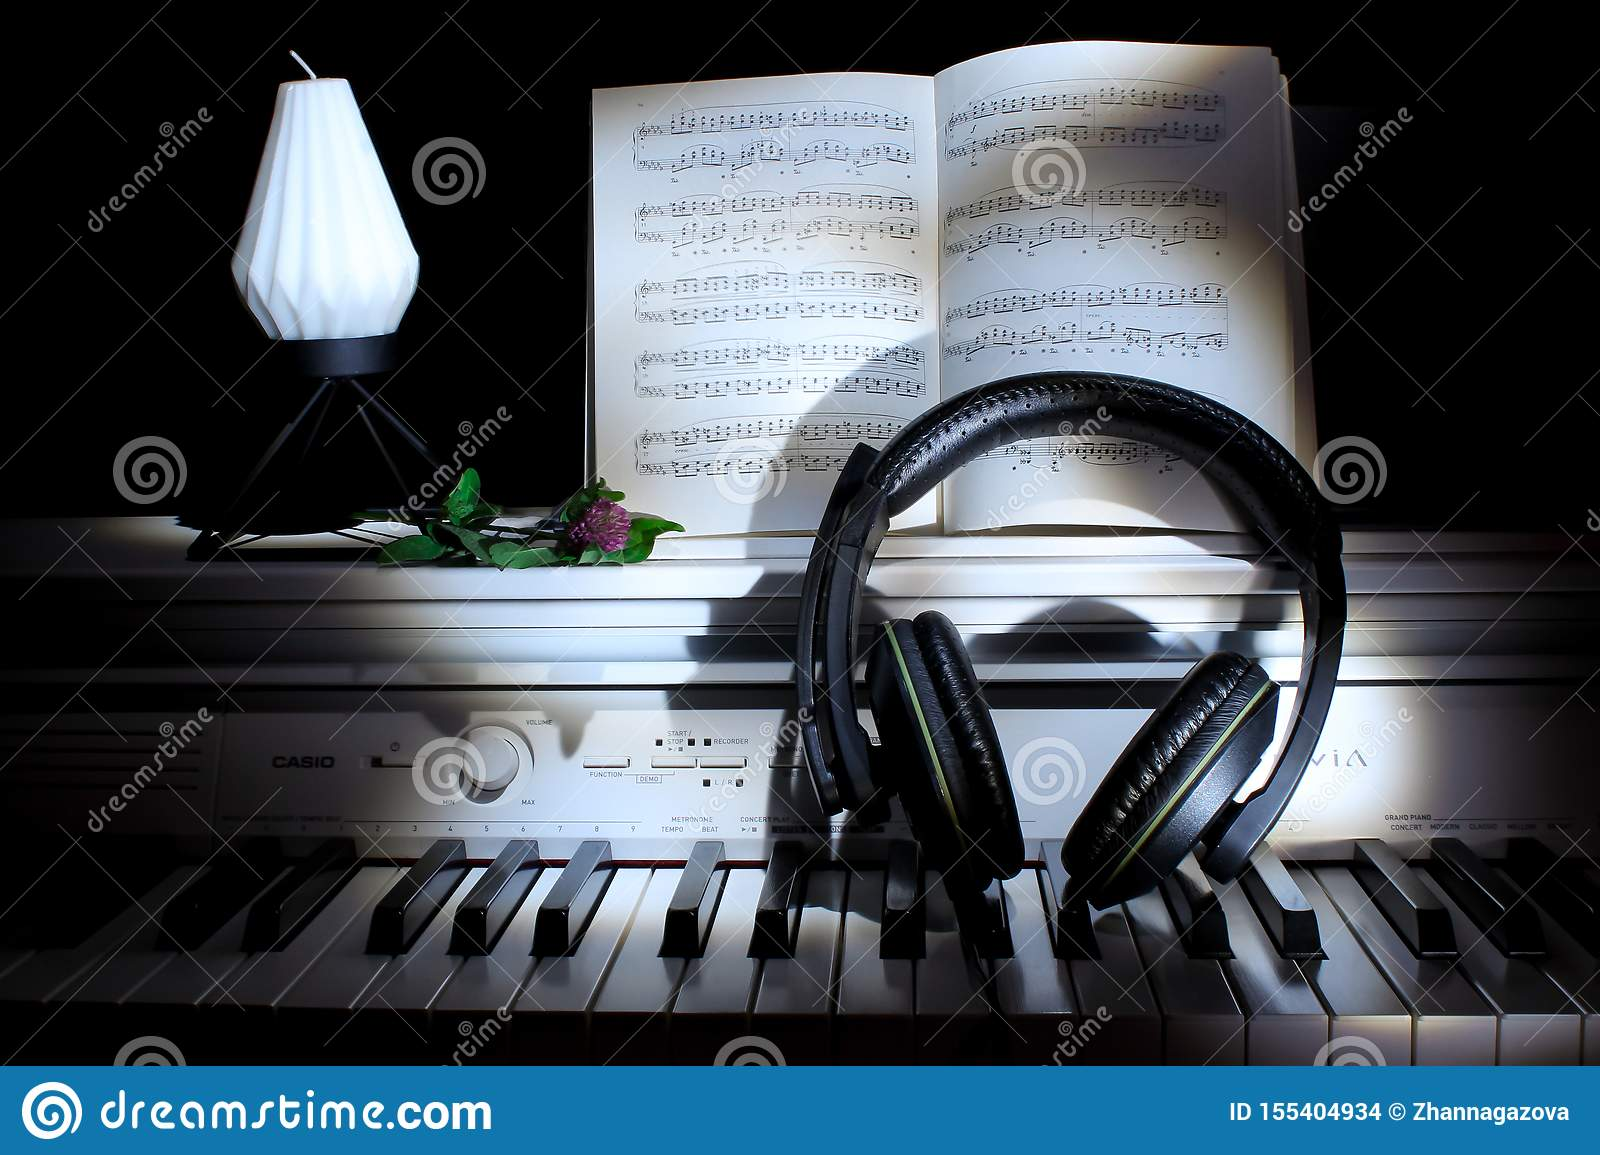 Piano Keys With Notes And Headphones Against A Dark Background Music Concept Picture For Wallpaper Stock Photo Image Of Beautiful Instrument 155404934